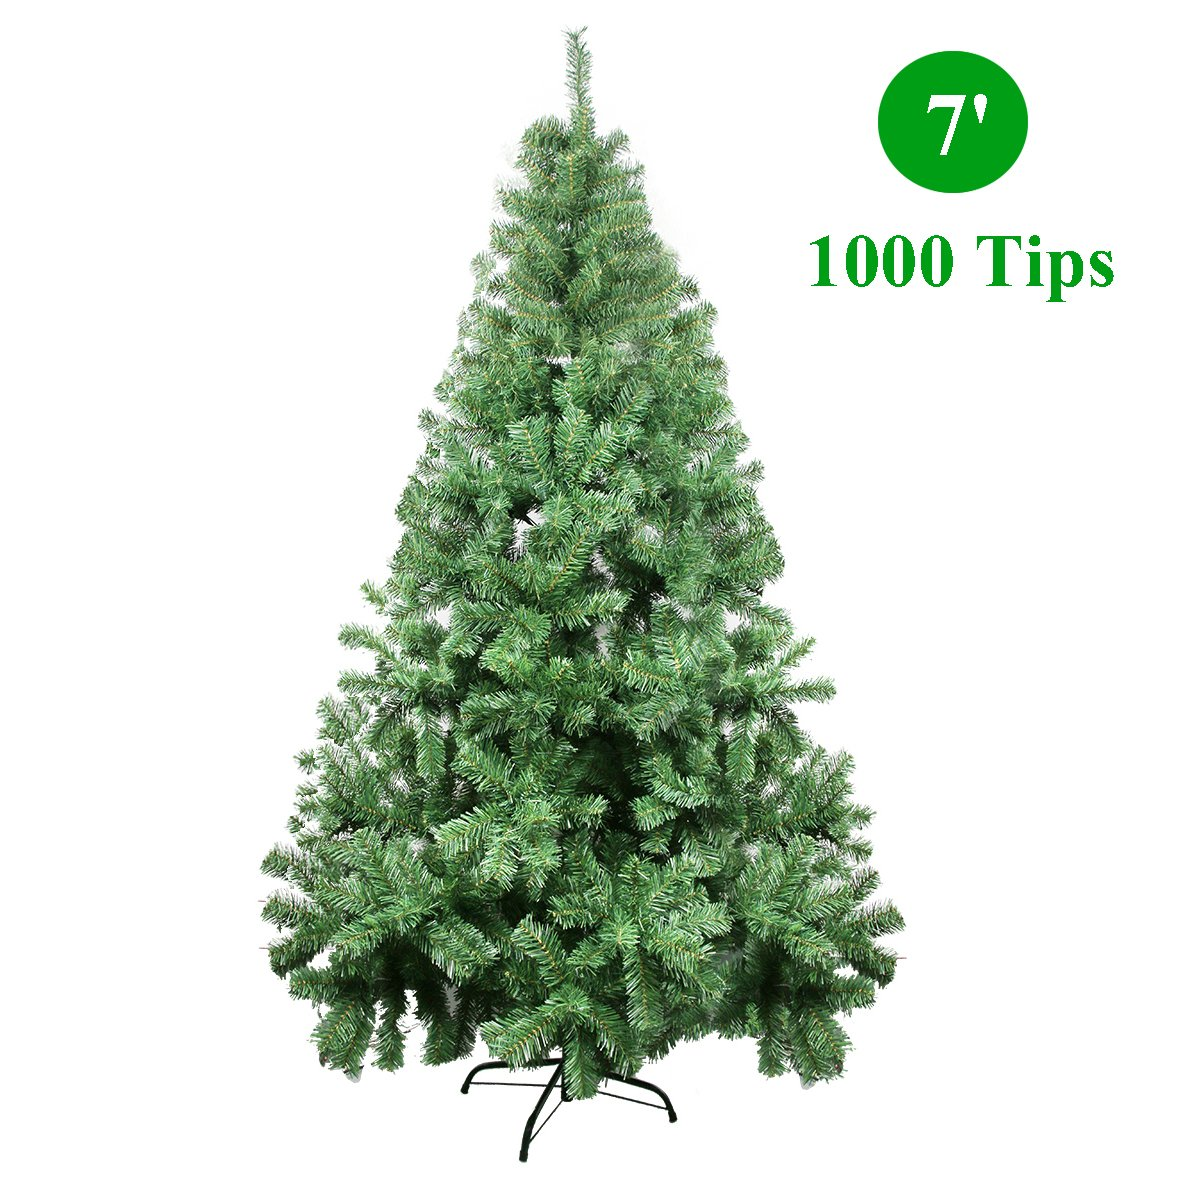 Amazon.com: CelebrationLight Christmas Tree - Xmas Tree - Artificial  Christmas Pine Trees - 1000 Branch Tips for Lush Looking - 3 Separable  Sections - Tree ...